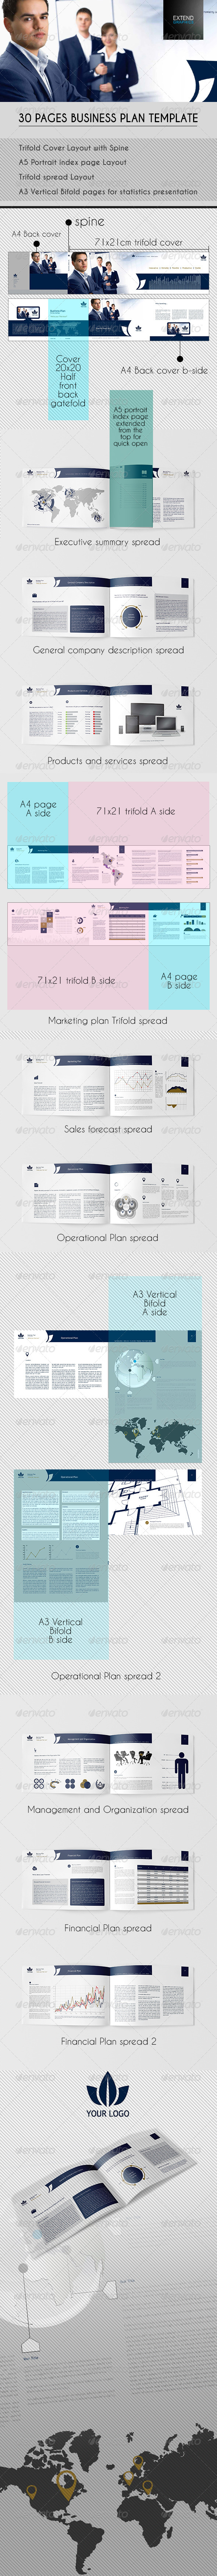 30 Pages Business Plan Template   Design   Templates   Pinterest     30 Pages Business Plan Template   Design   Templates   Pinterest   Business  planning  Template and Business